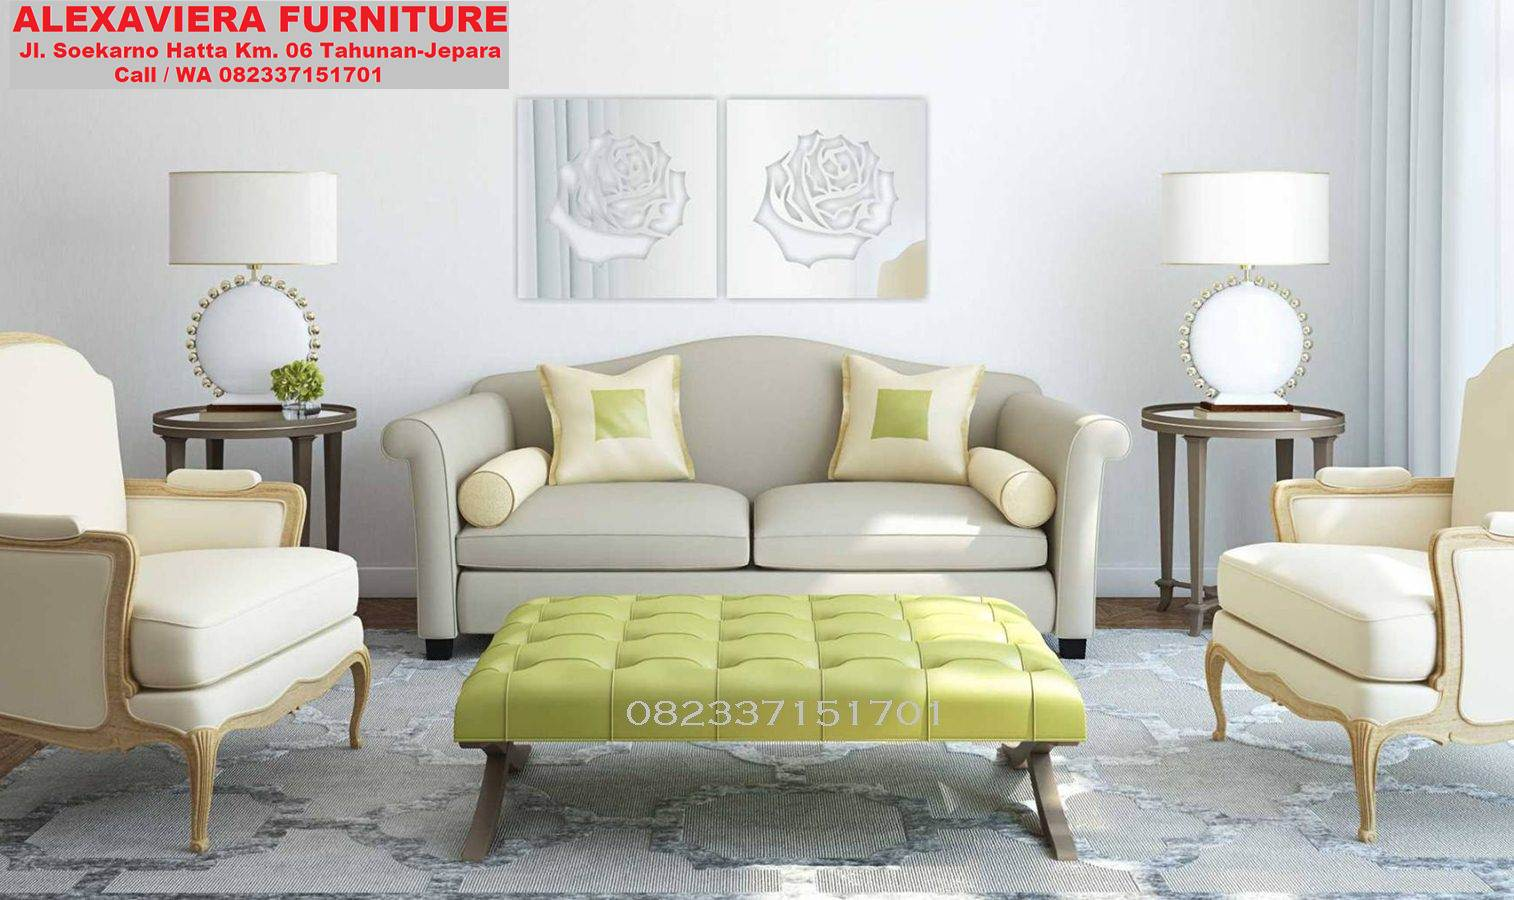 Model Sofa Ruang Tamu Set Kursi Sofa Ruang Tamu Alexaviera Furniture Kt 042 Kursi Sofa